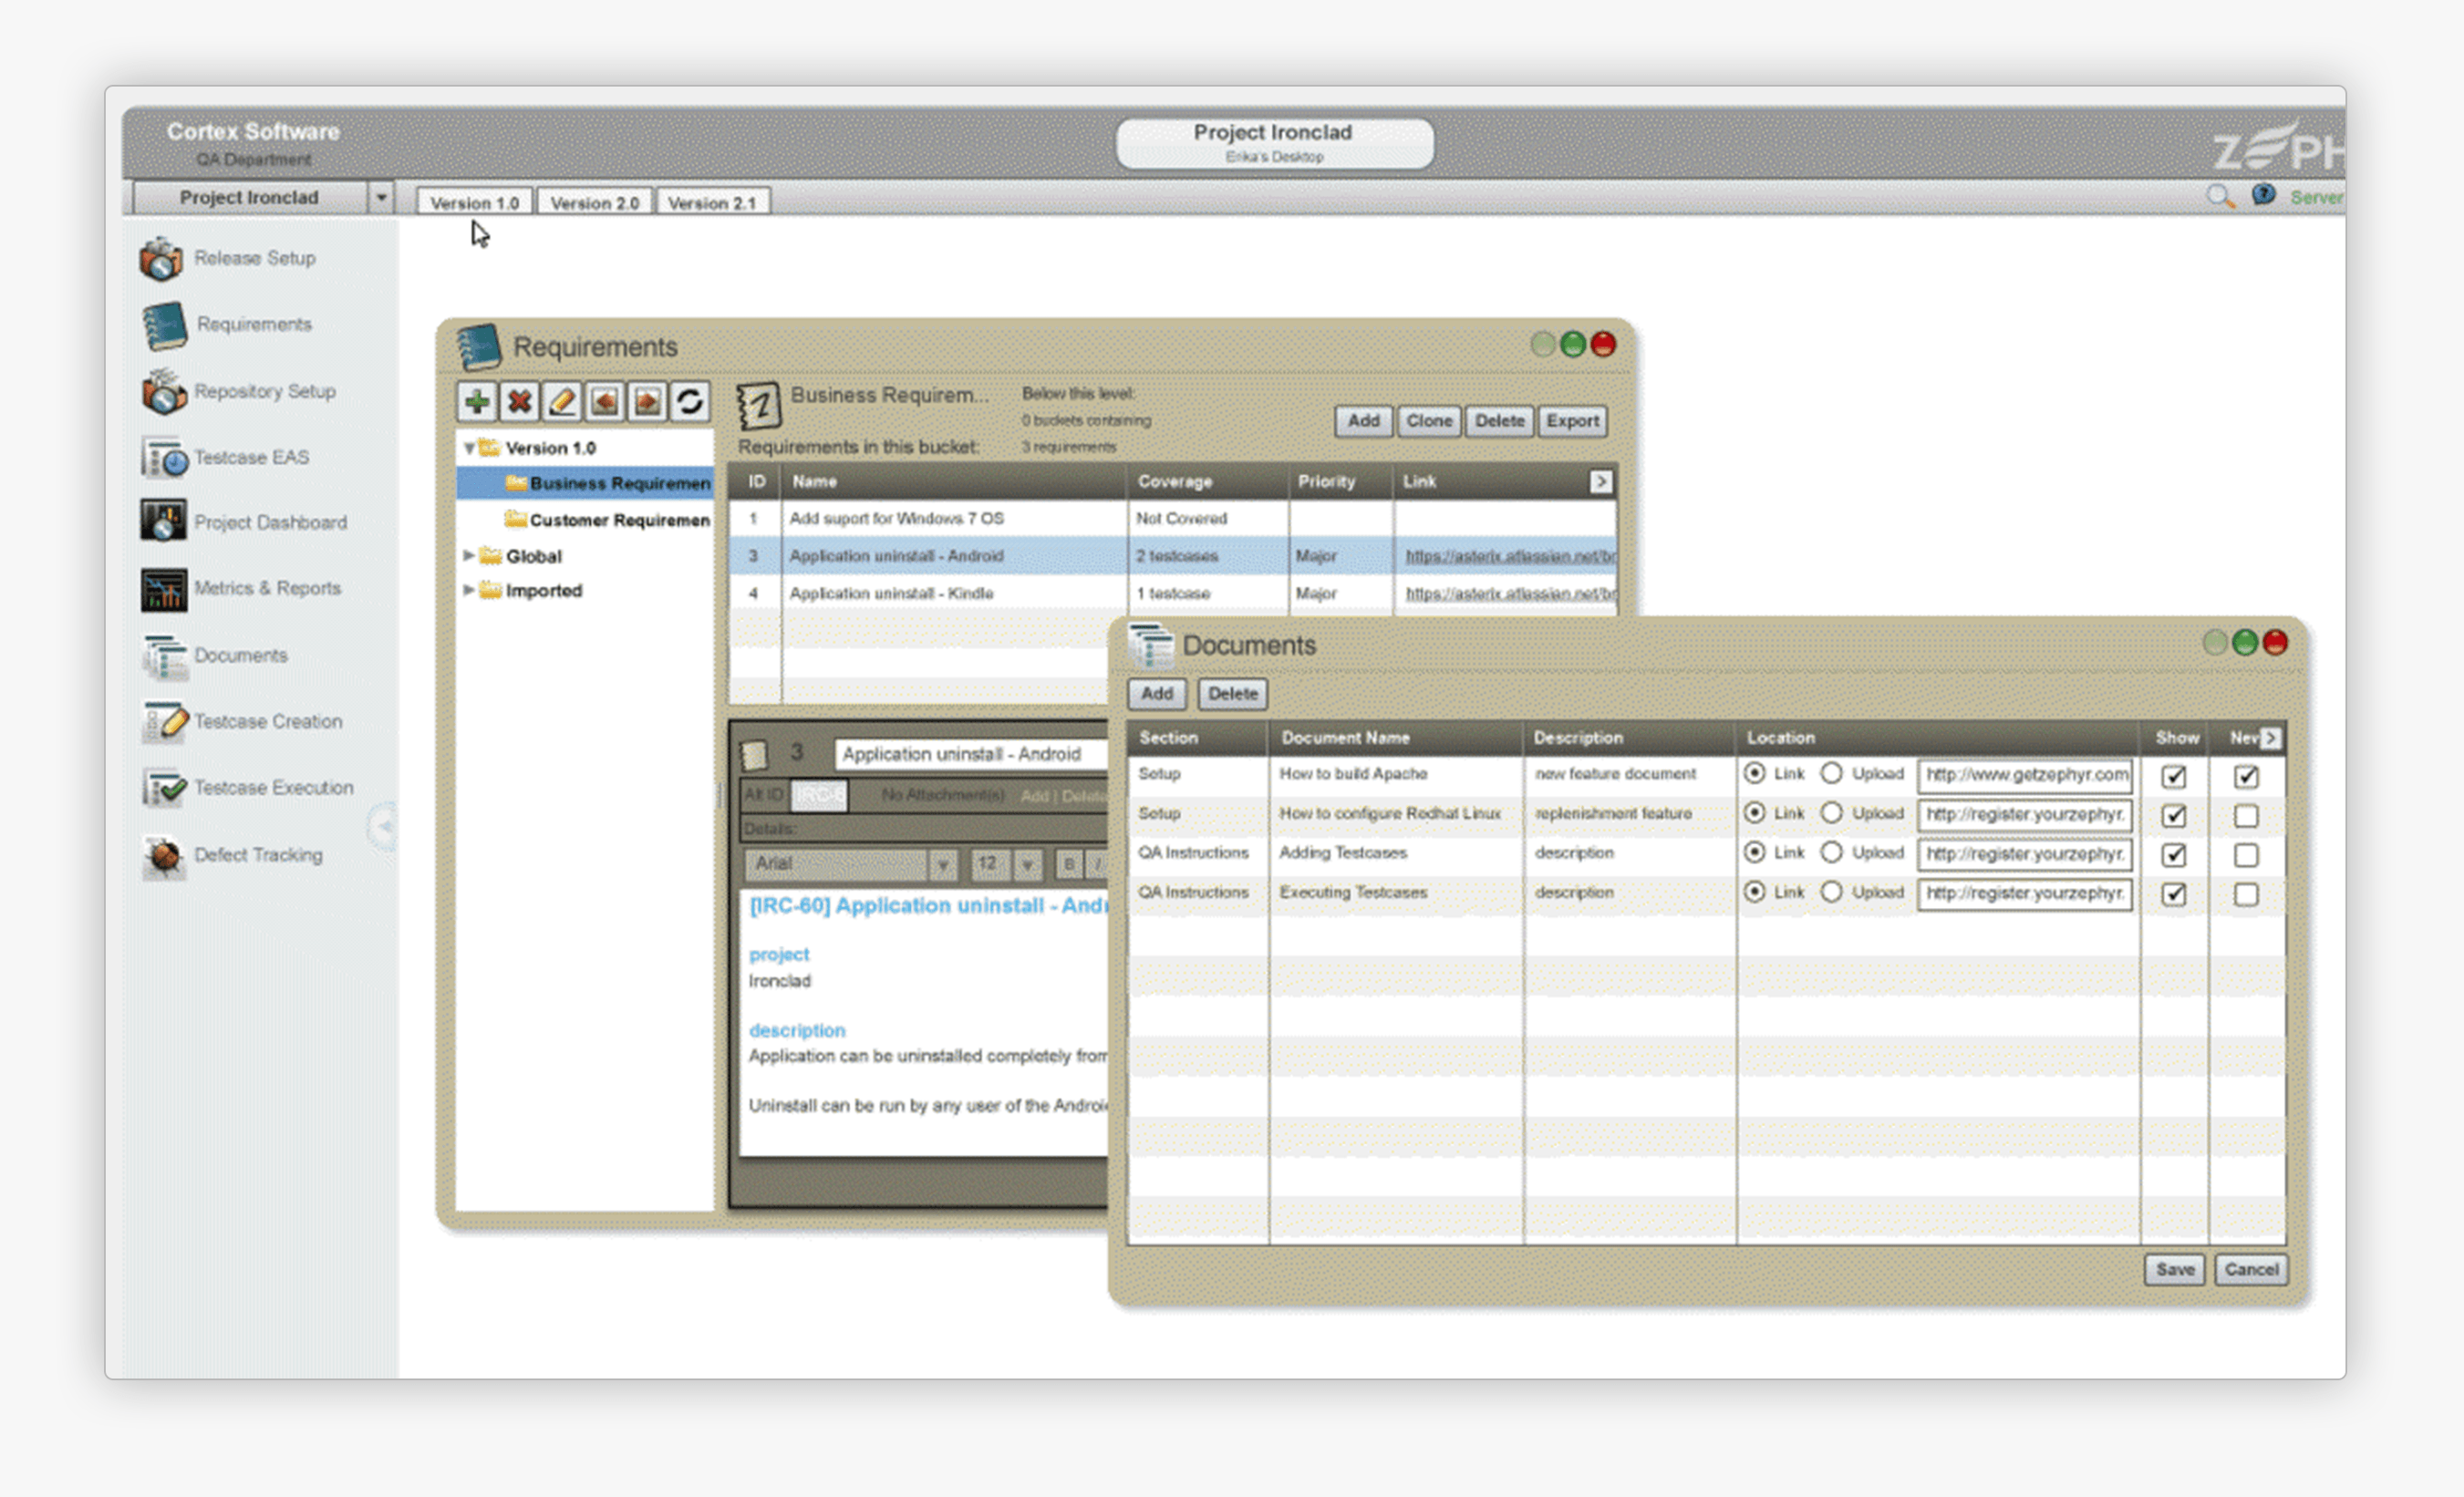 View of Zephyr Enterprise 4.7 Flash based UI